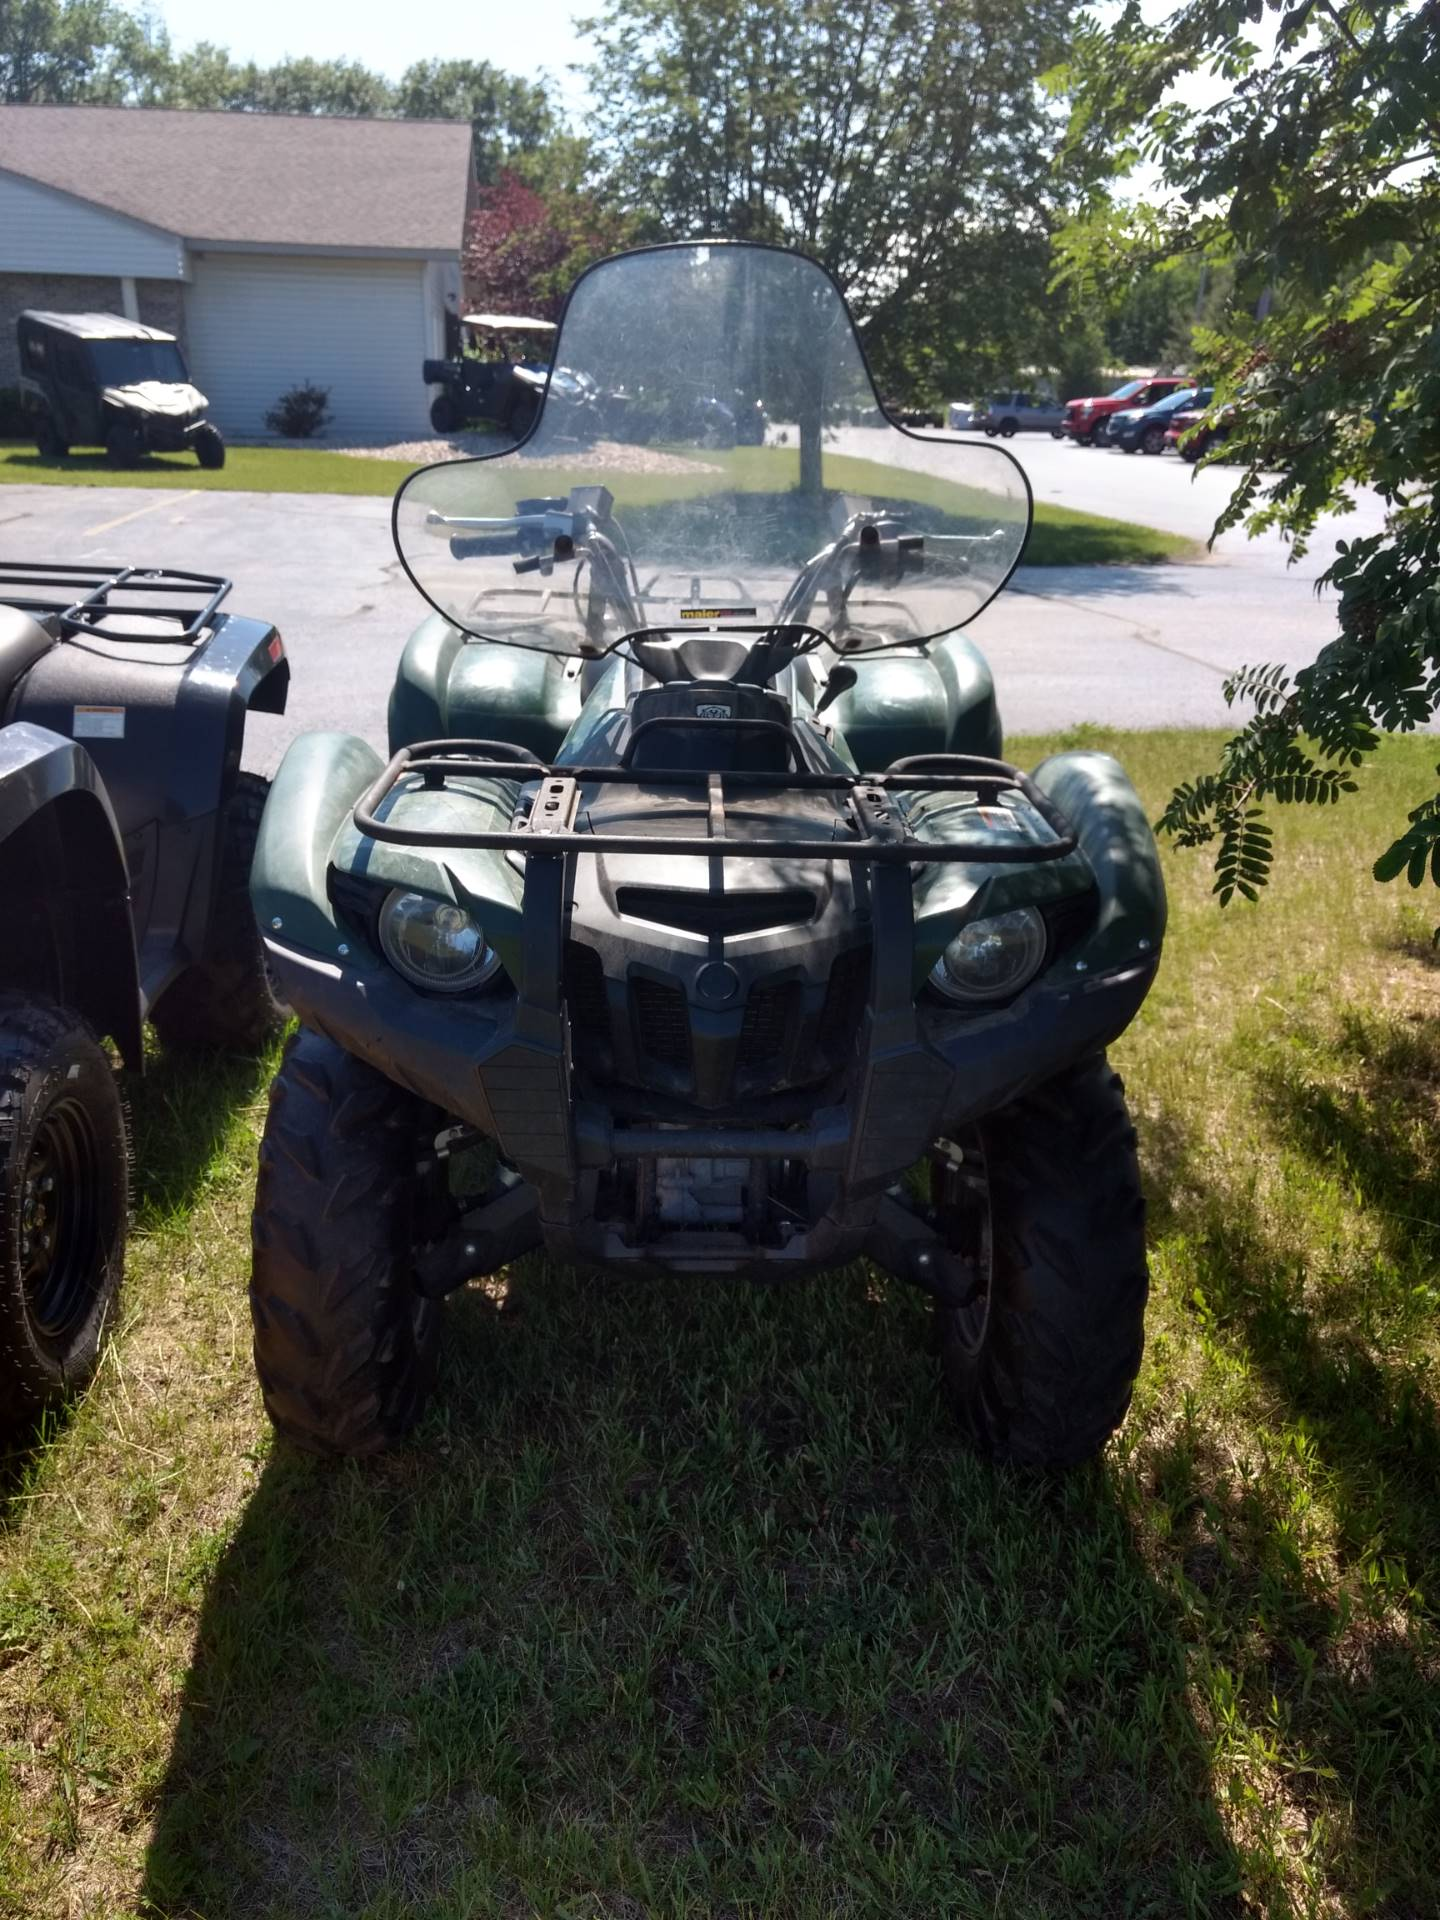 2012 Yamaha Grizzly 550 FI Auto. 4x4 in Escanaba, Michigan - Photo 1